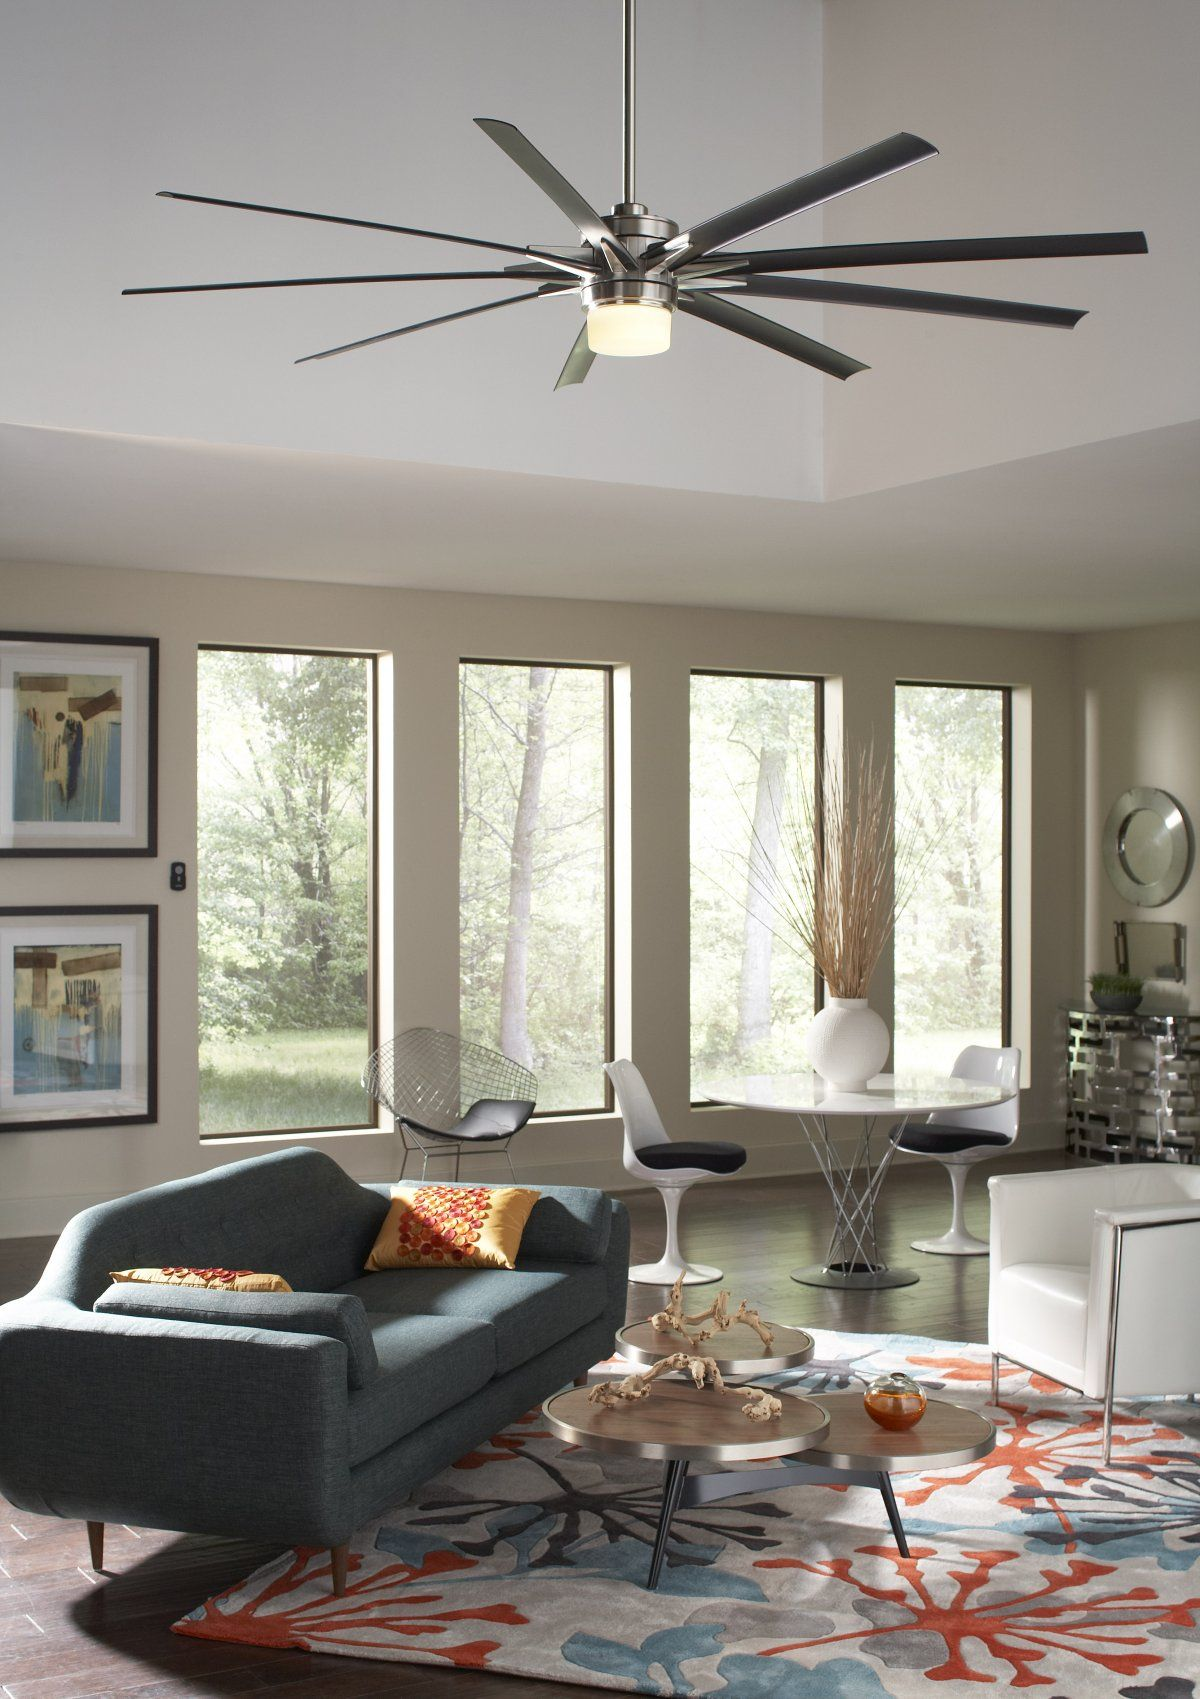 Decorating With Ceiling Fans: Interior Design Ideas That